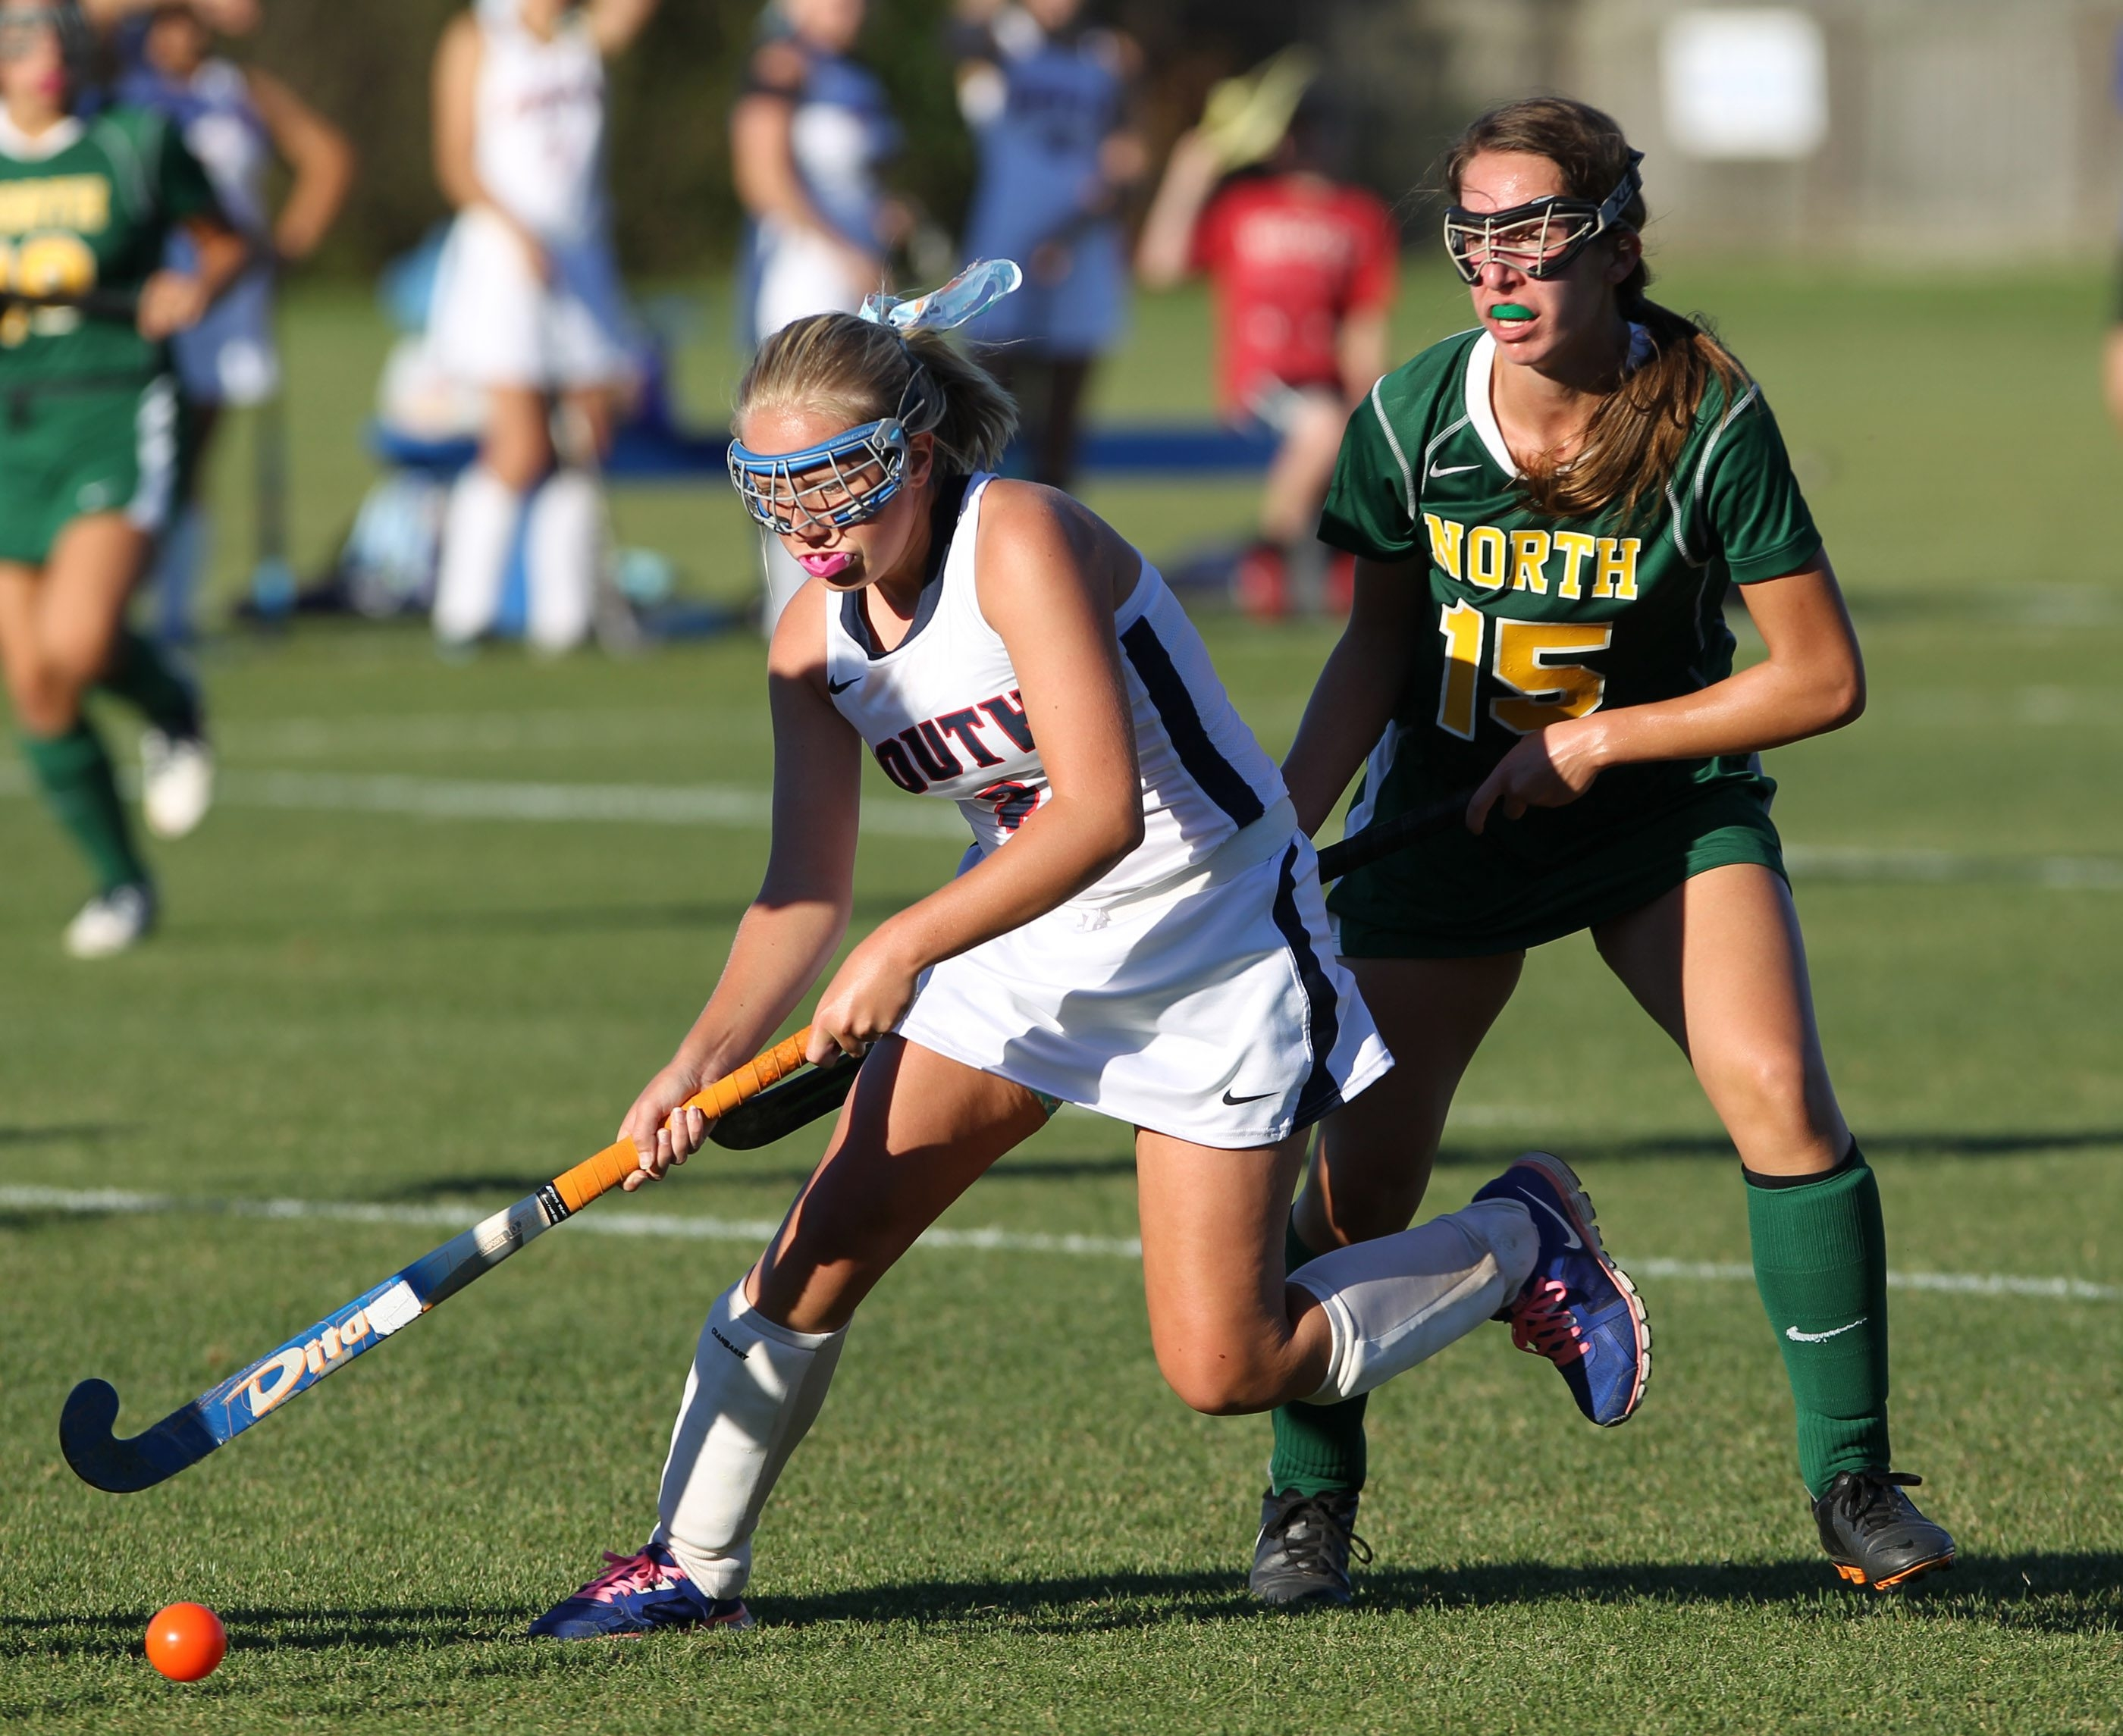 Three-time All-Western New York field hockey pick Abby Ferenczy is taking her talents to Ball State. (James P. McCoy/Buffalo News file photo)